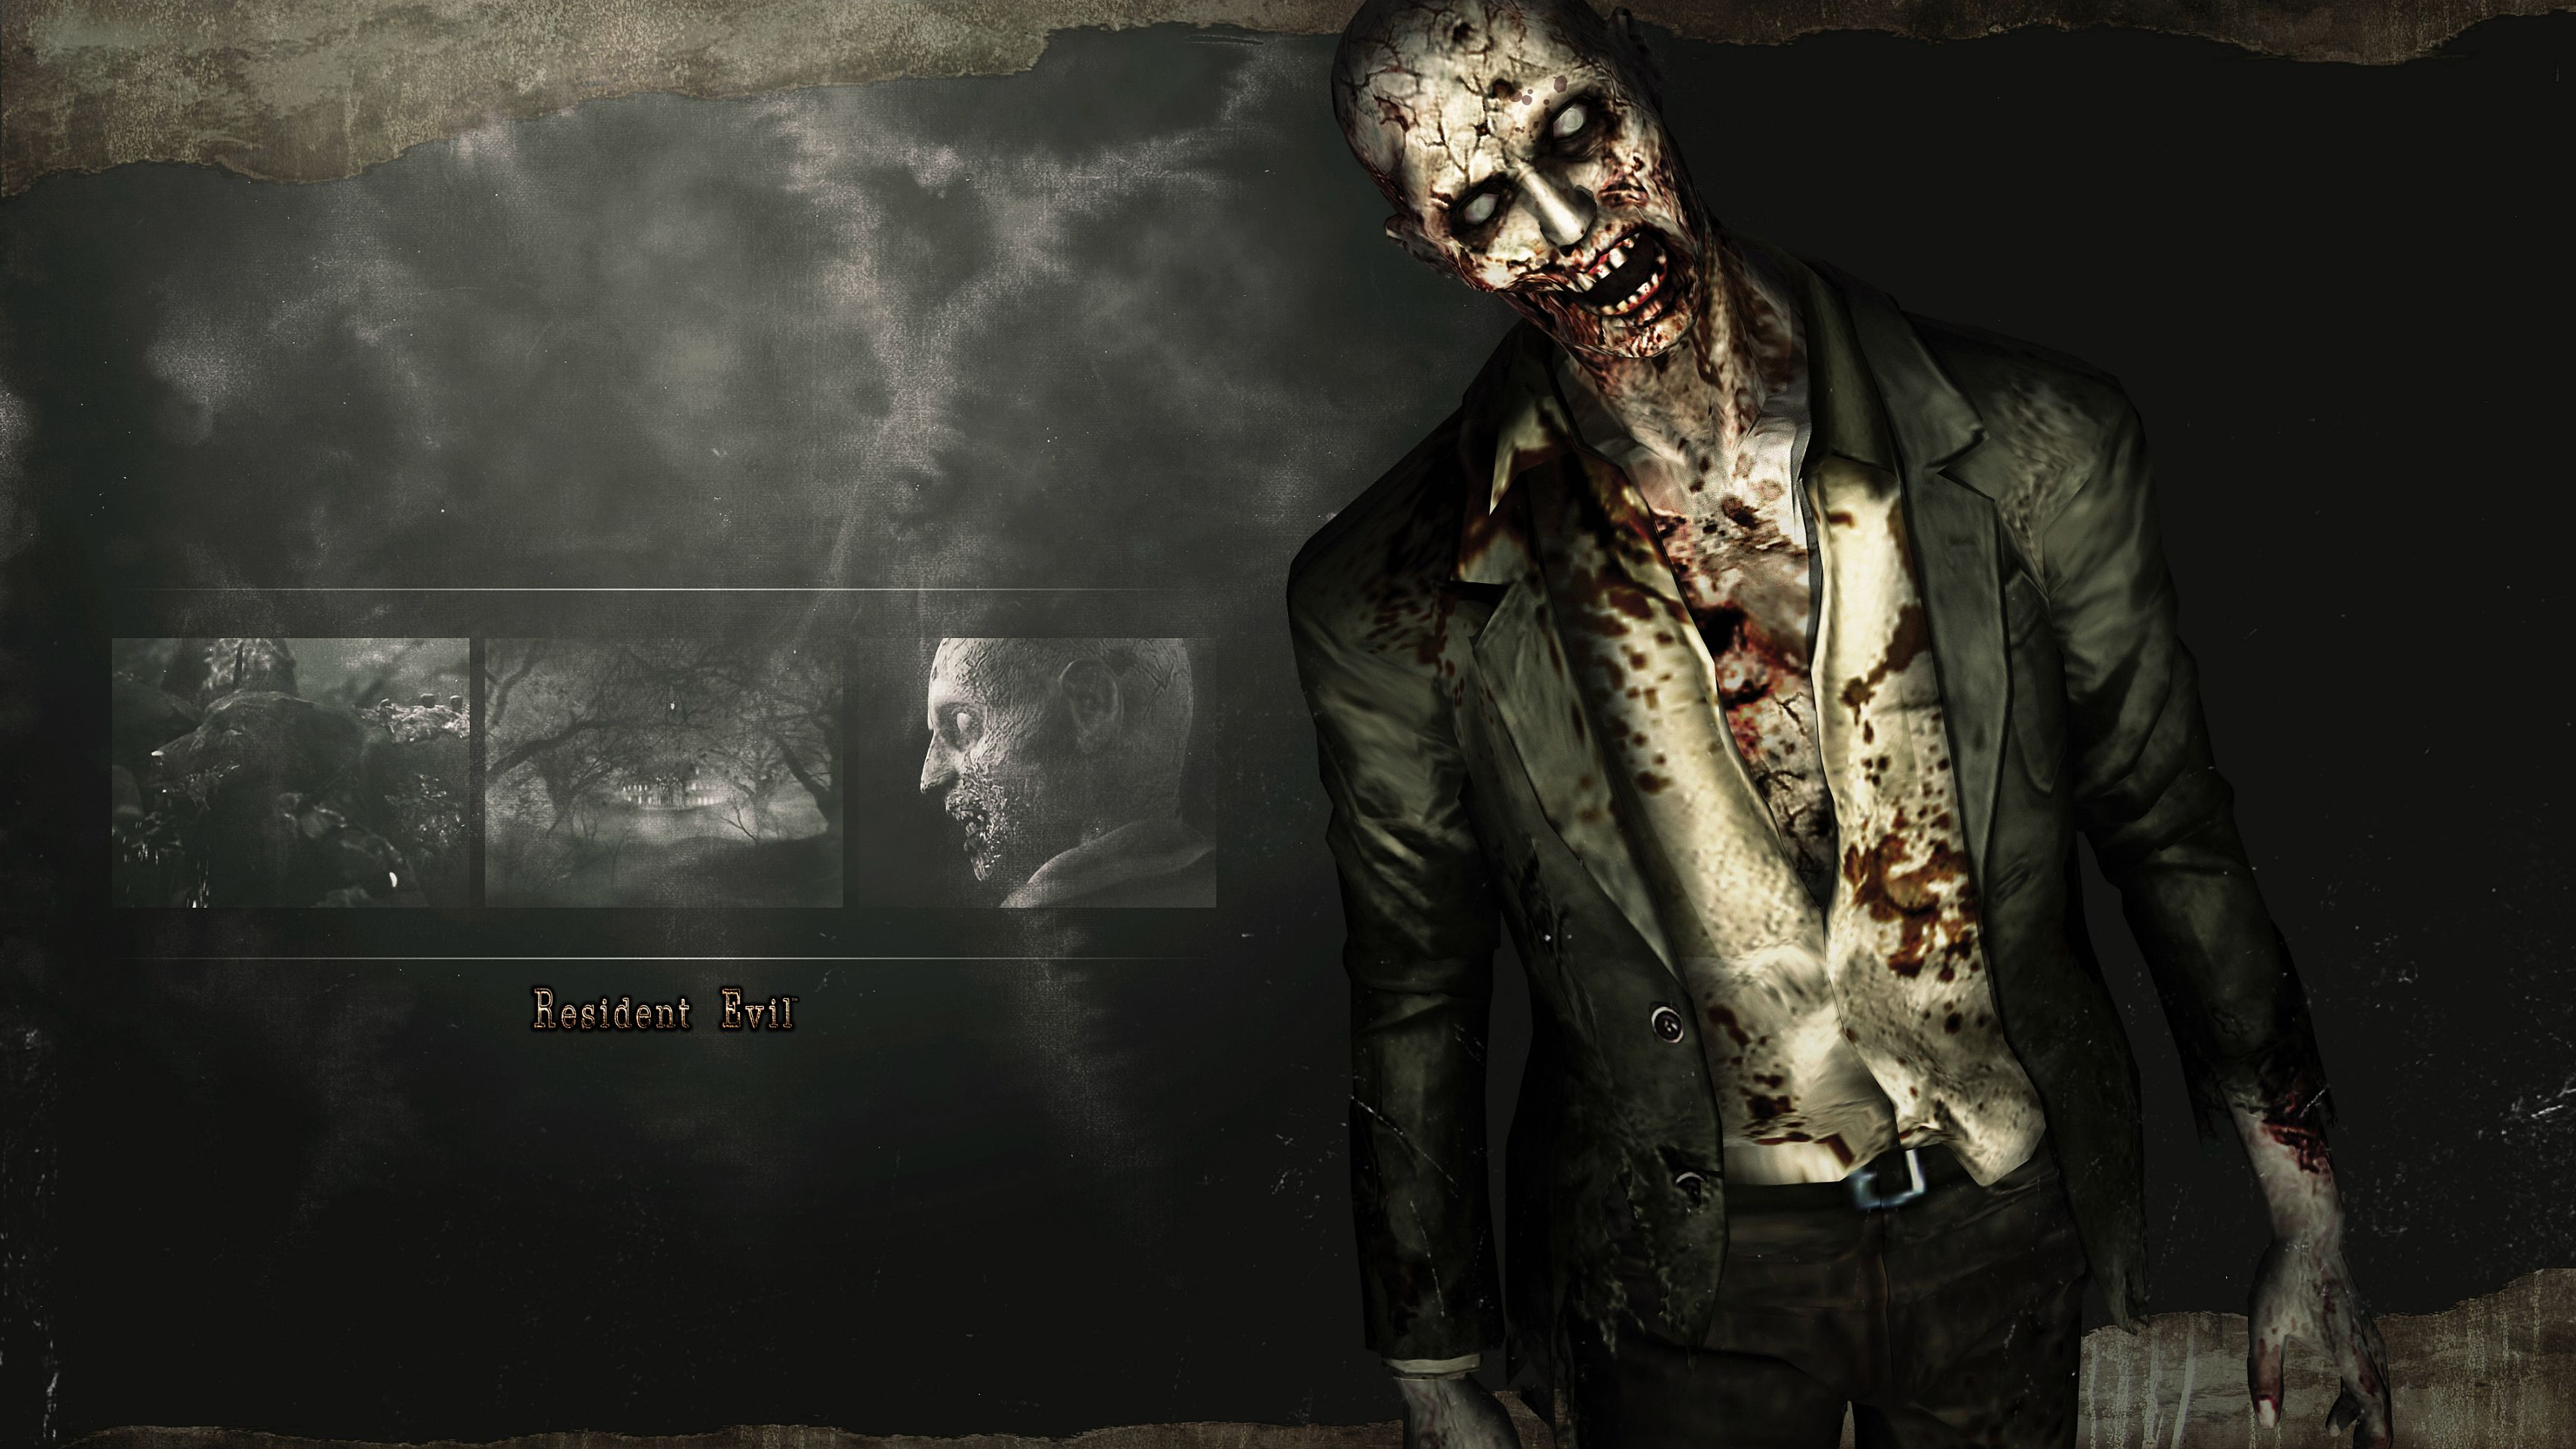 3456x1944 - Resident Evil HD Wallpapers 2